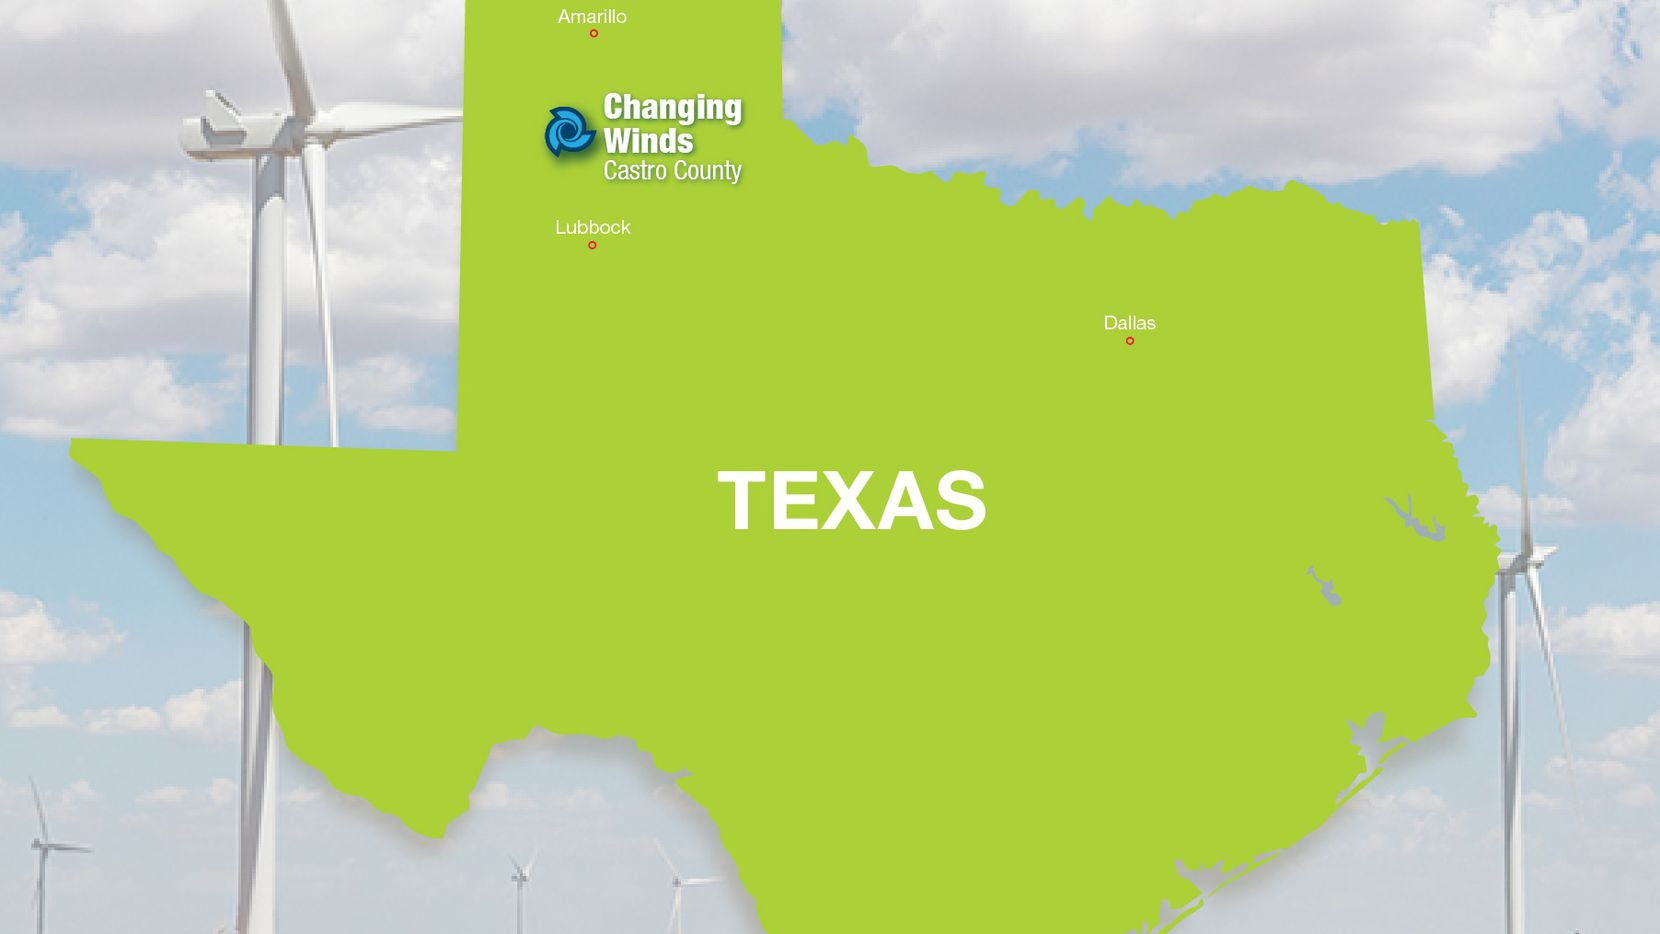 The Changing Winds electrical generation plant is between Lubbock and Amarillo in West Texas.